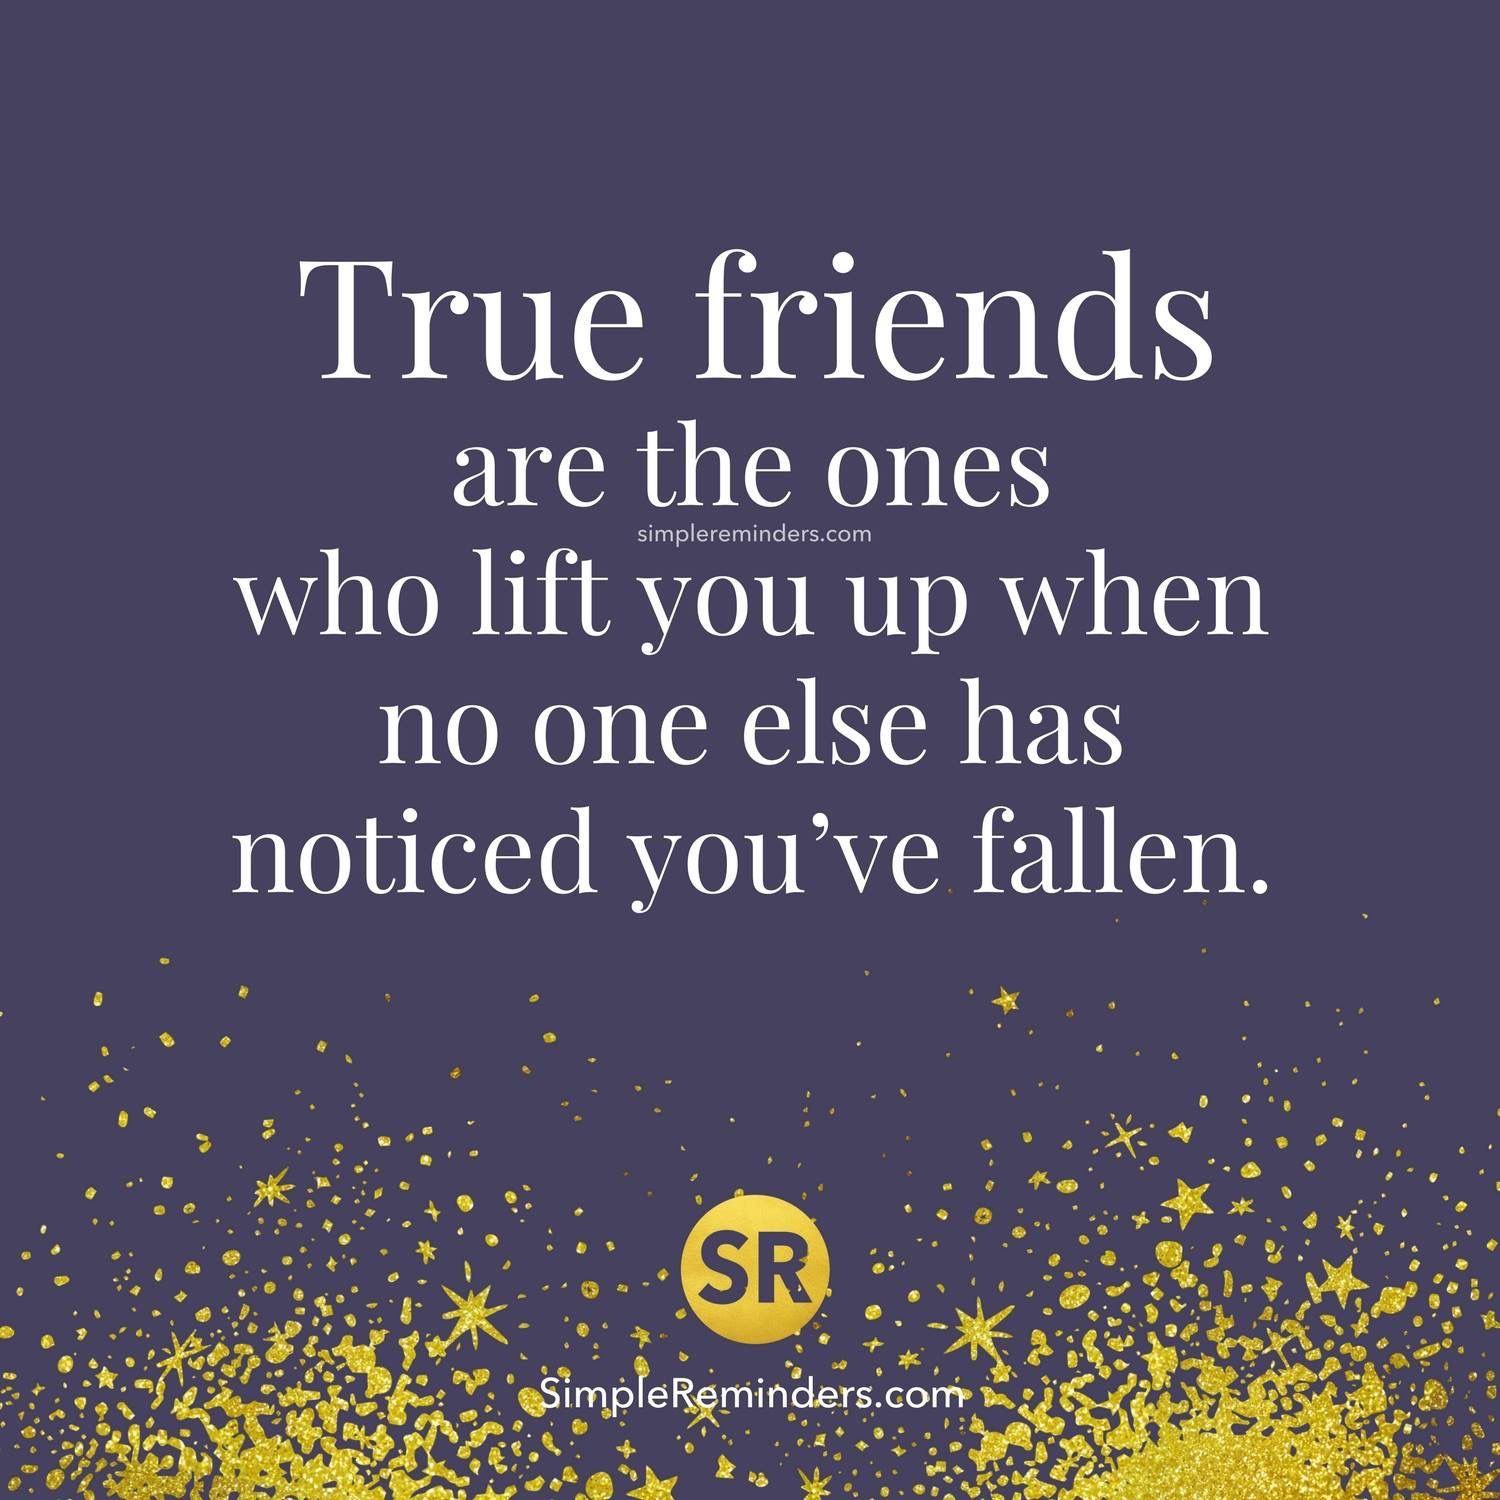 78 Wise Quotes On Life Love And Friendship: Pin By Sharon Meisler On Friendship